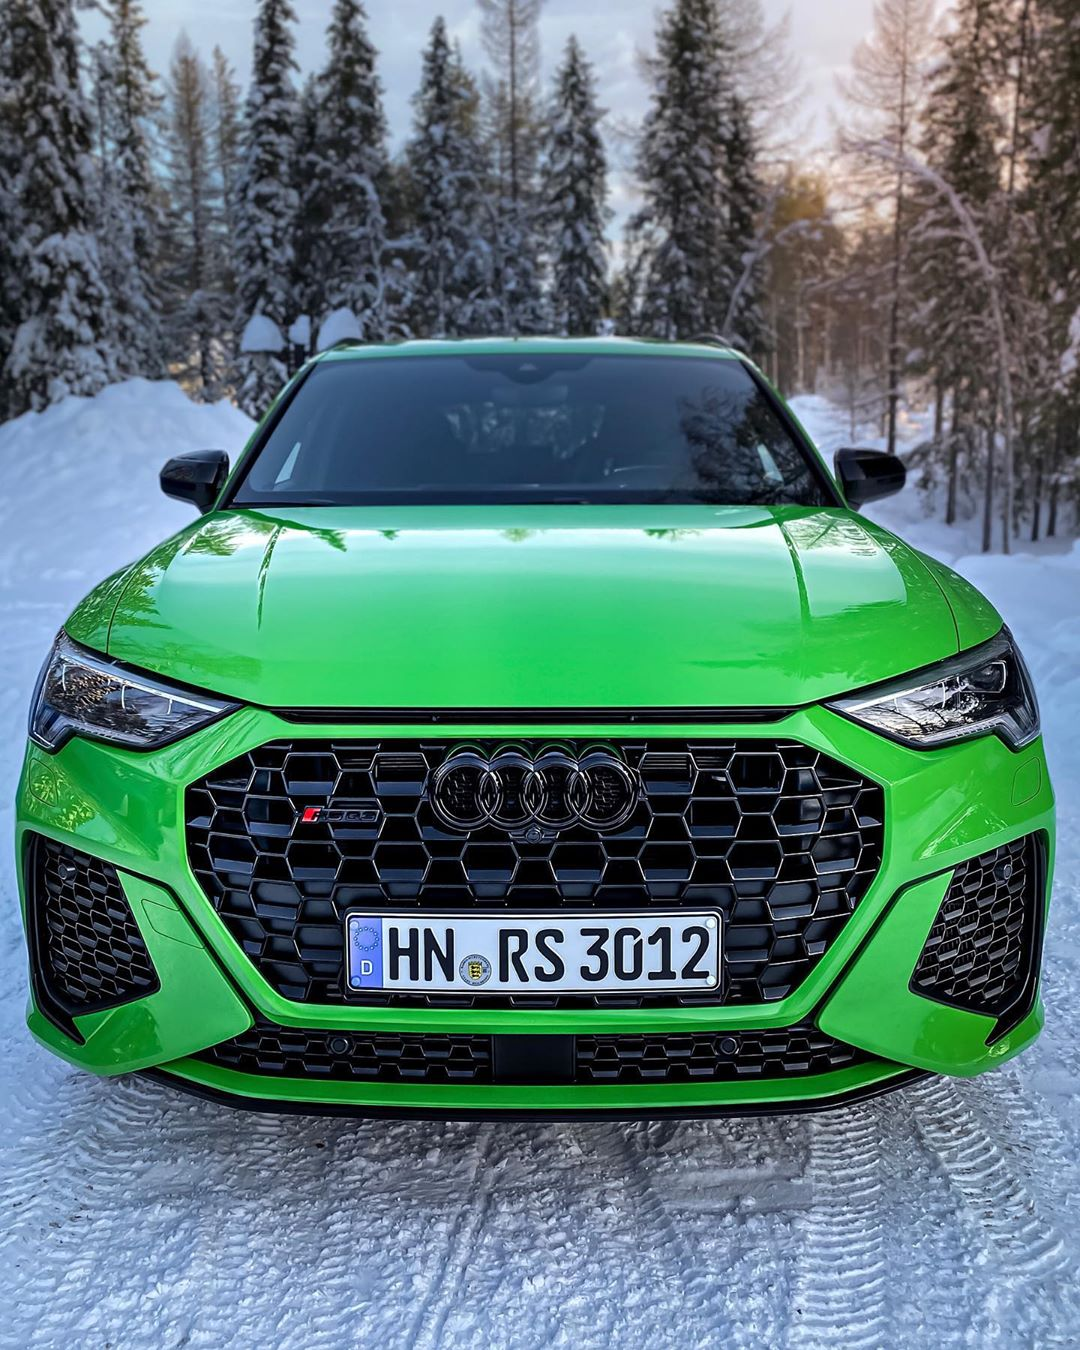 Could this be our next car following the TT RS in September 2020🤔…What do YOU think? @audi_de @audisport #audisport #audirs #audirsq3 #rsq3 #rsq3sportback #audirsq3sportback #snow #sweden #arvidsjaur #automanntv